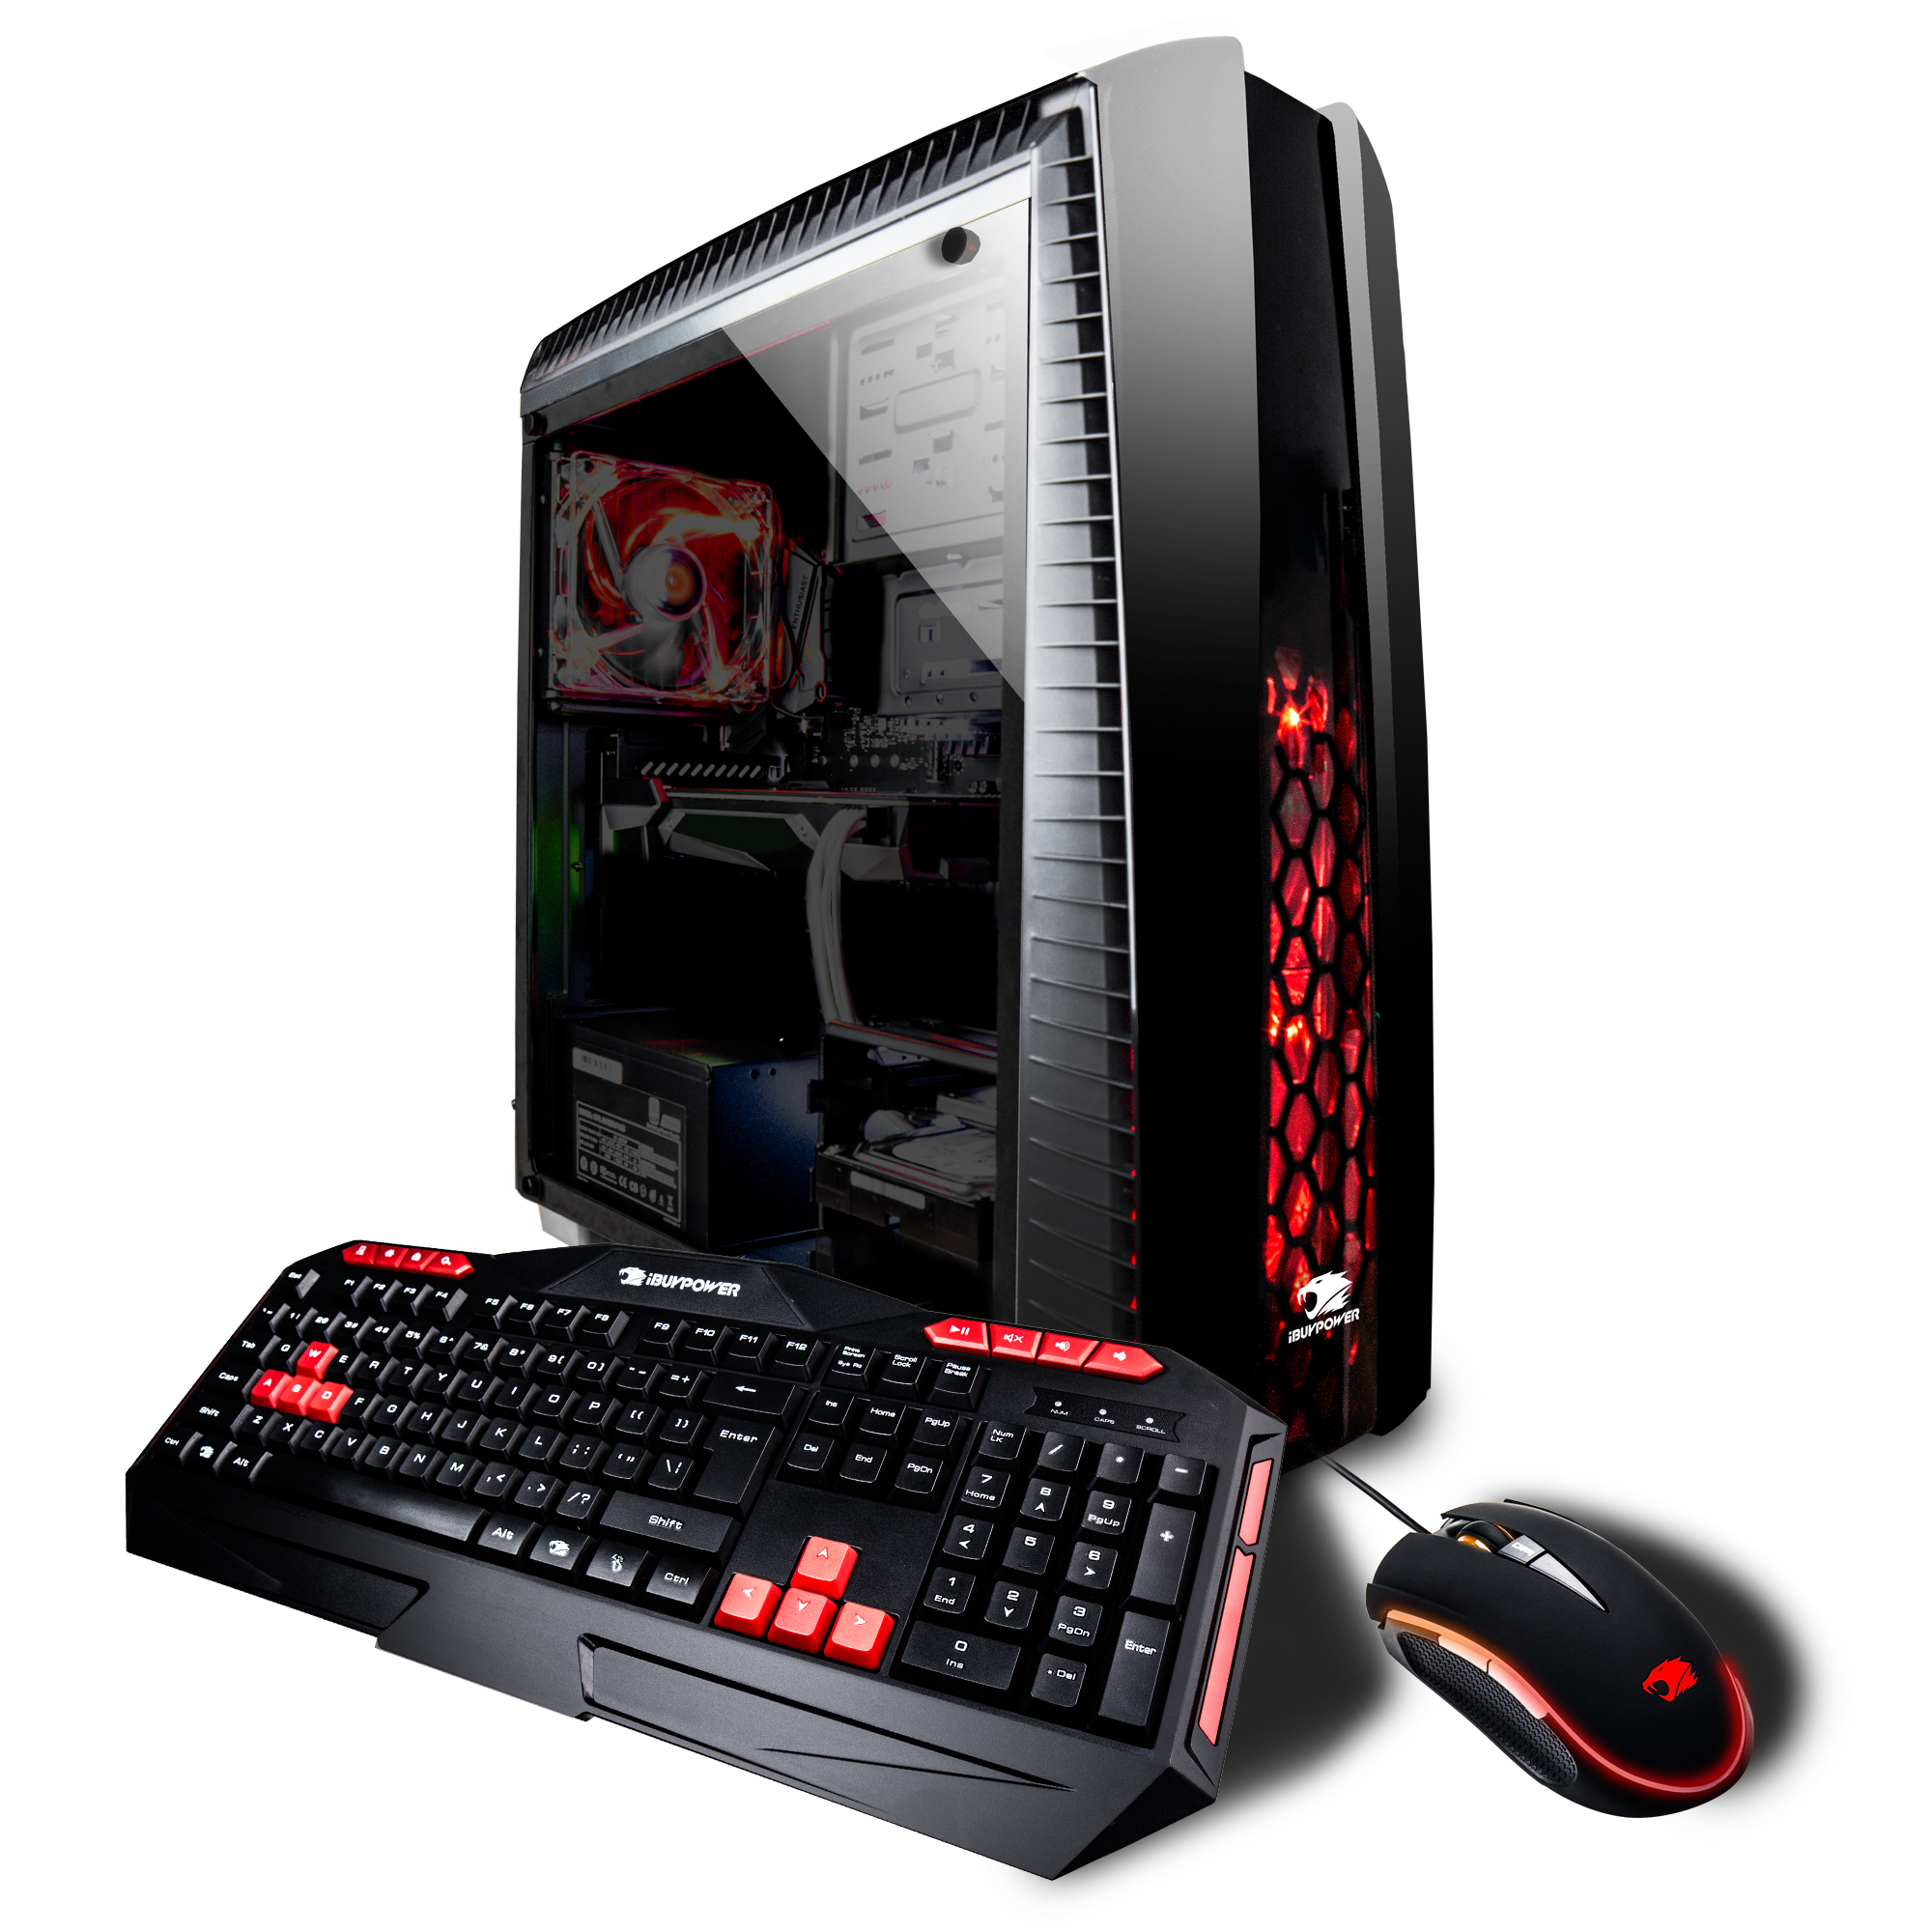 Best Gaming PCs - iBUYPOWER WA583RX Gaming Desktop PC With AMD FX-8320 Review